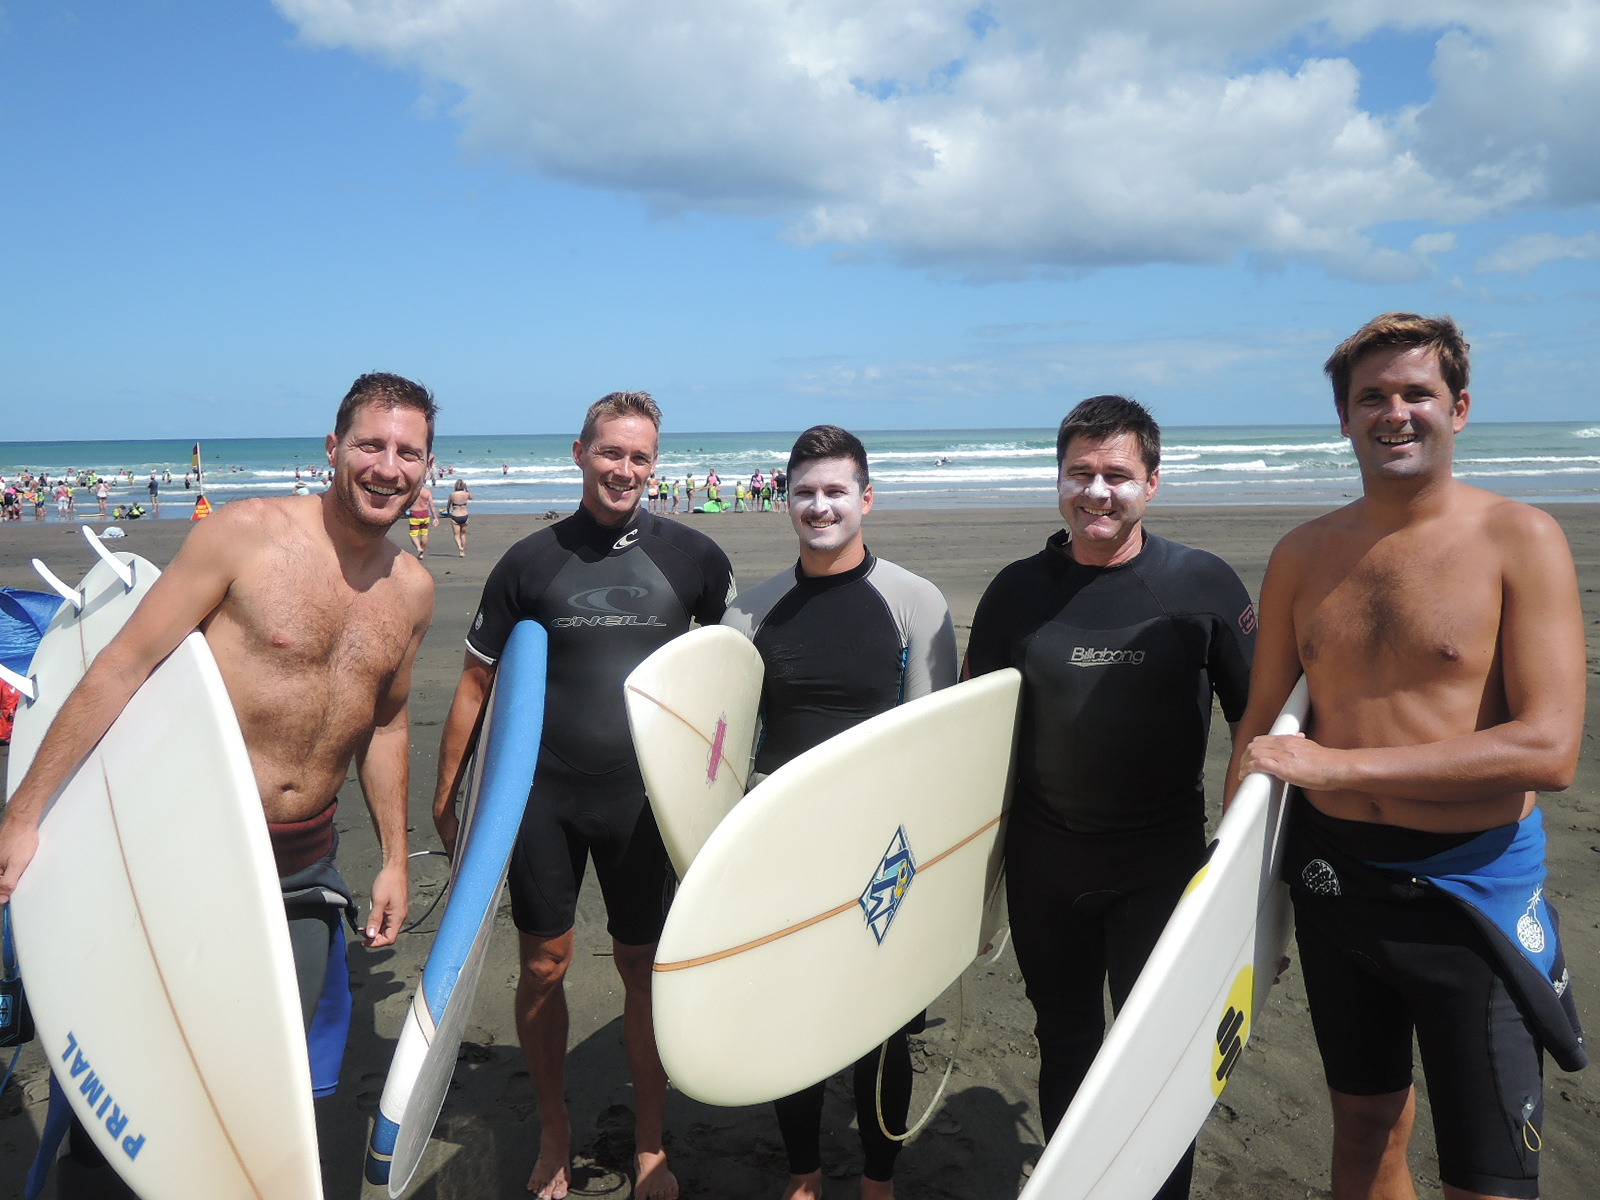 GaySurfers in New Zealand